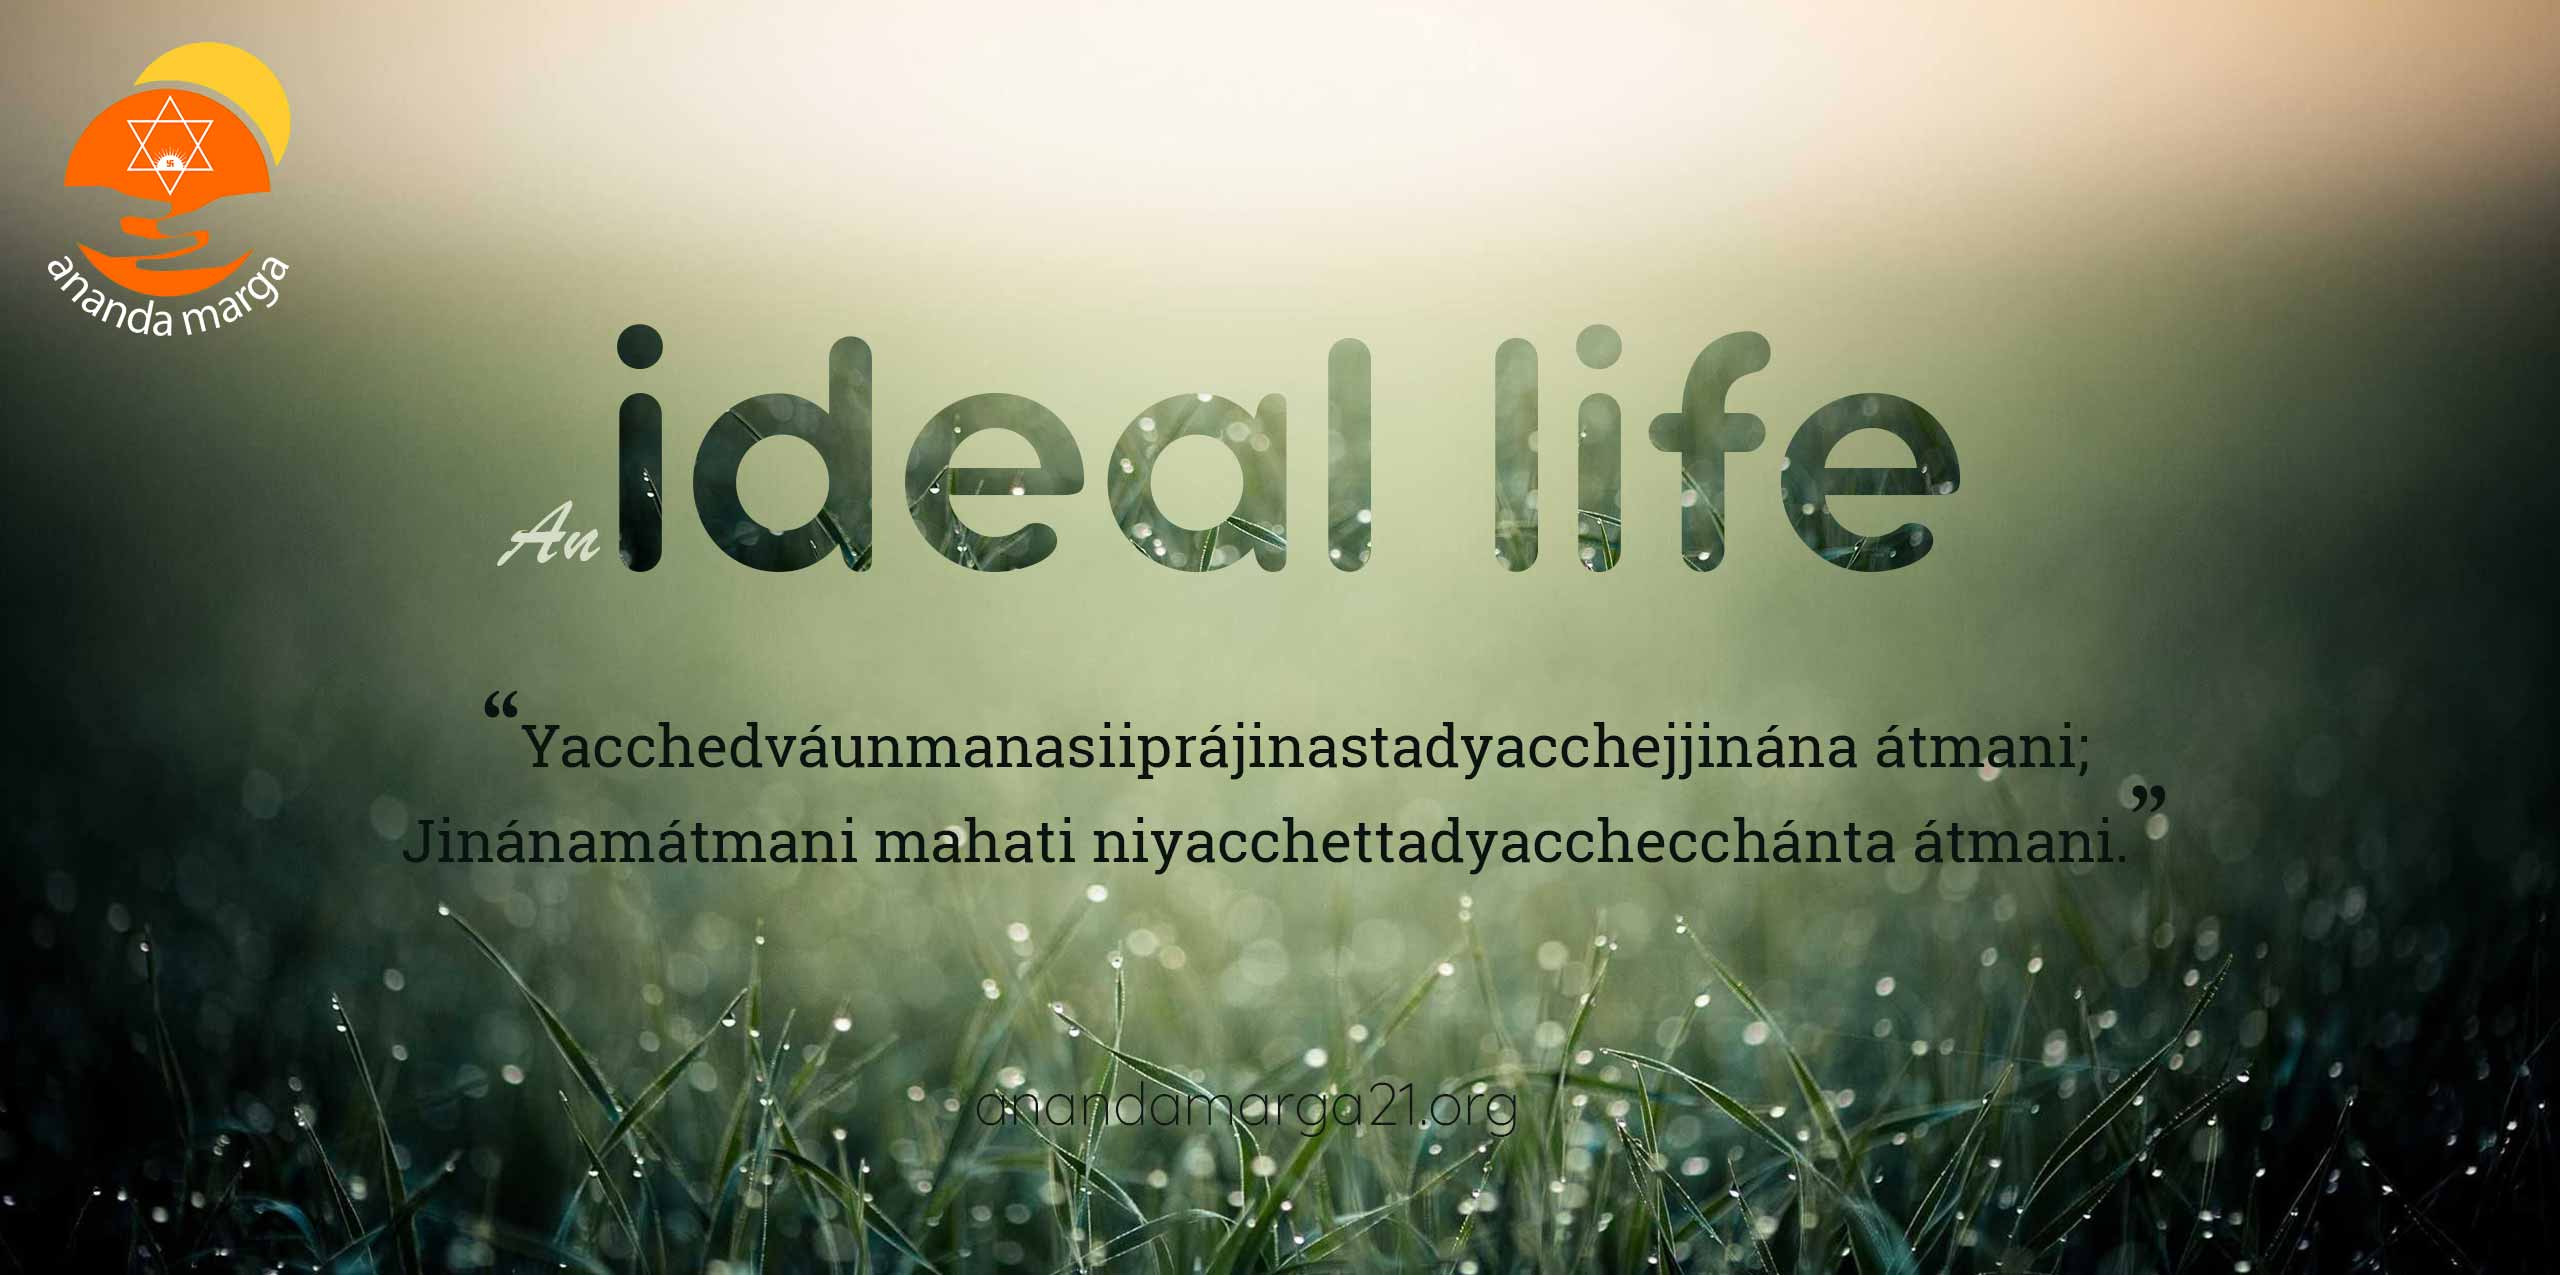 Ananda marga-An Ideal Life